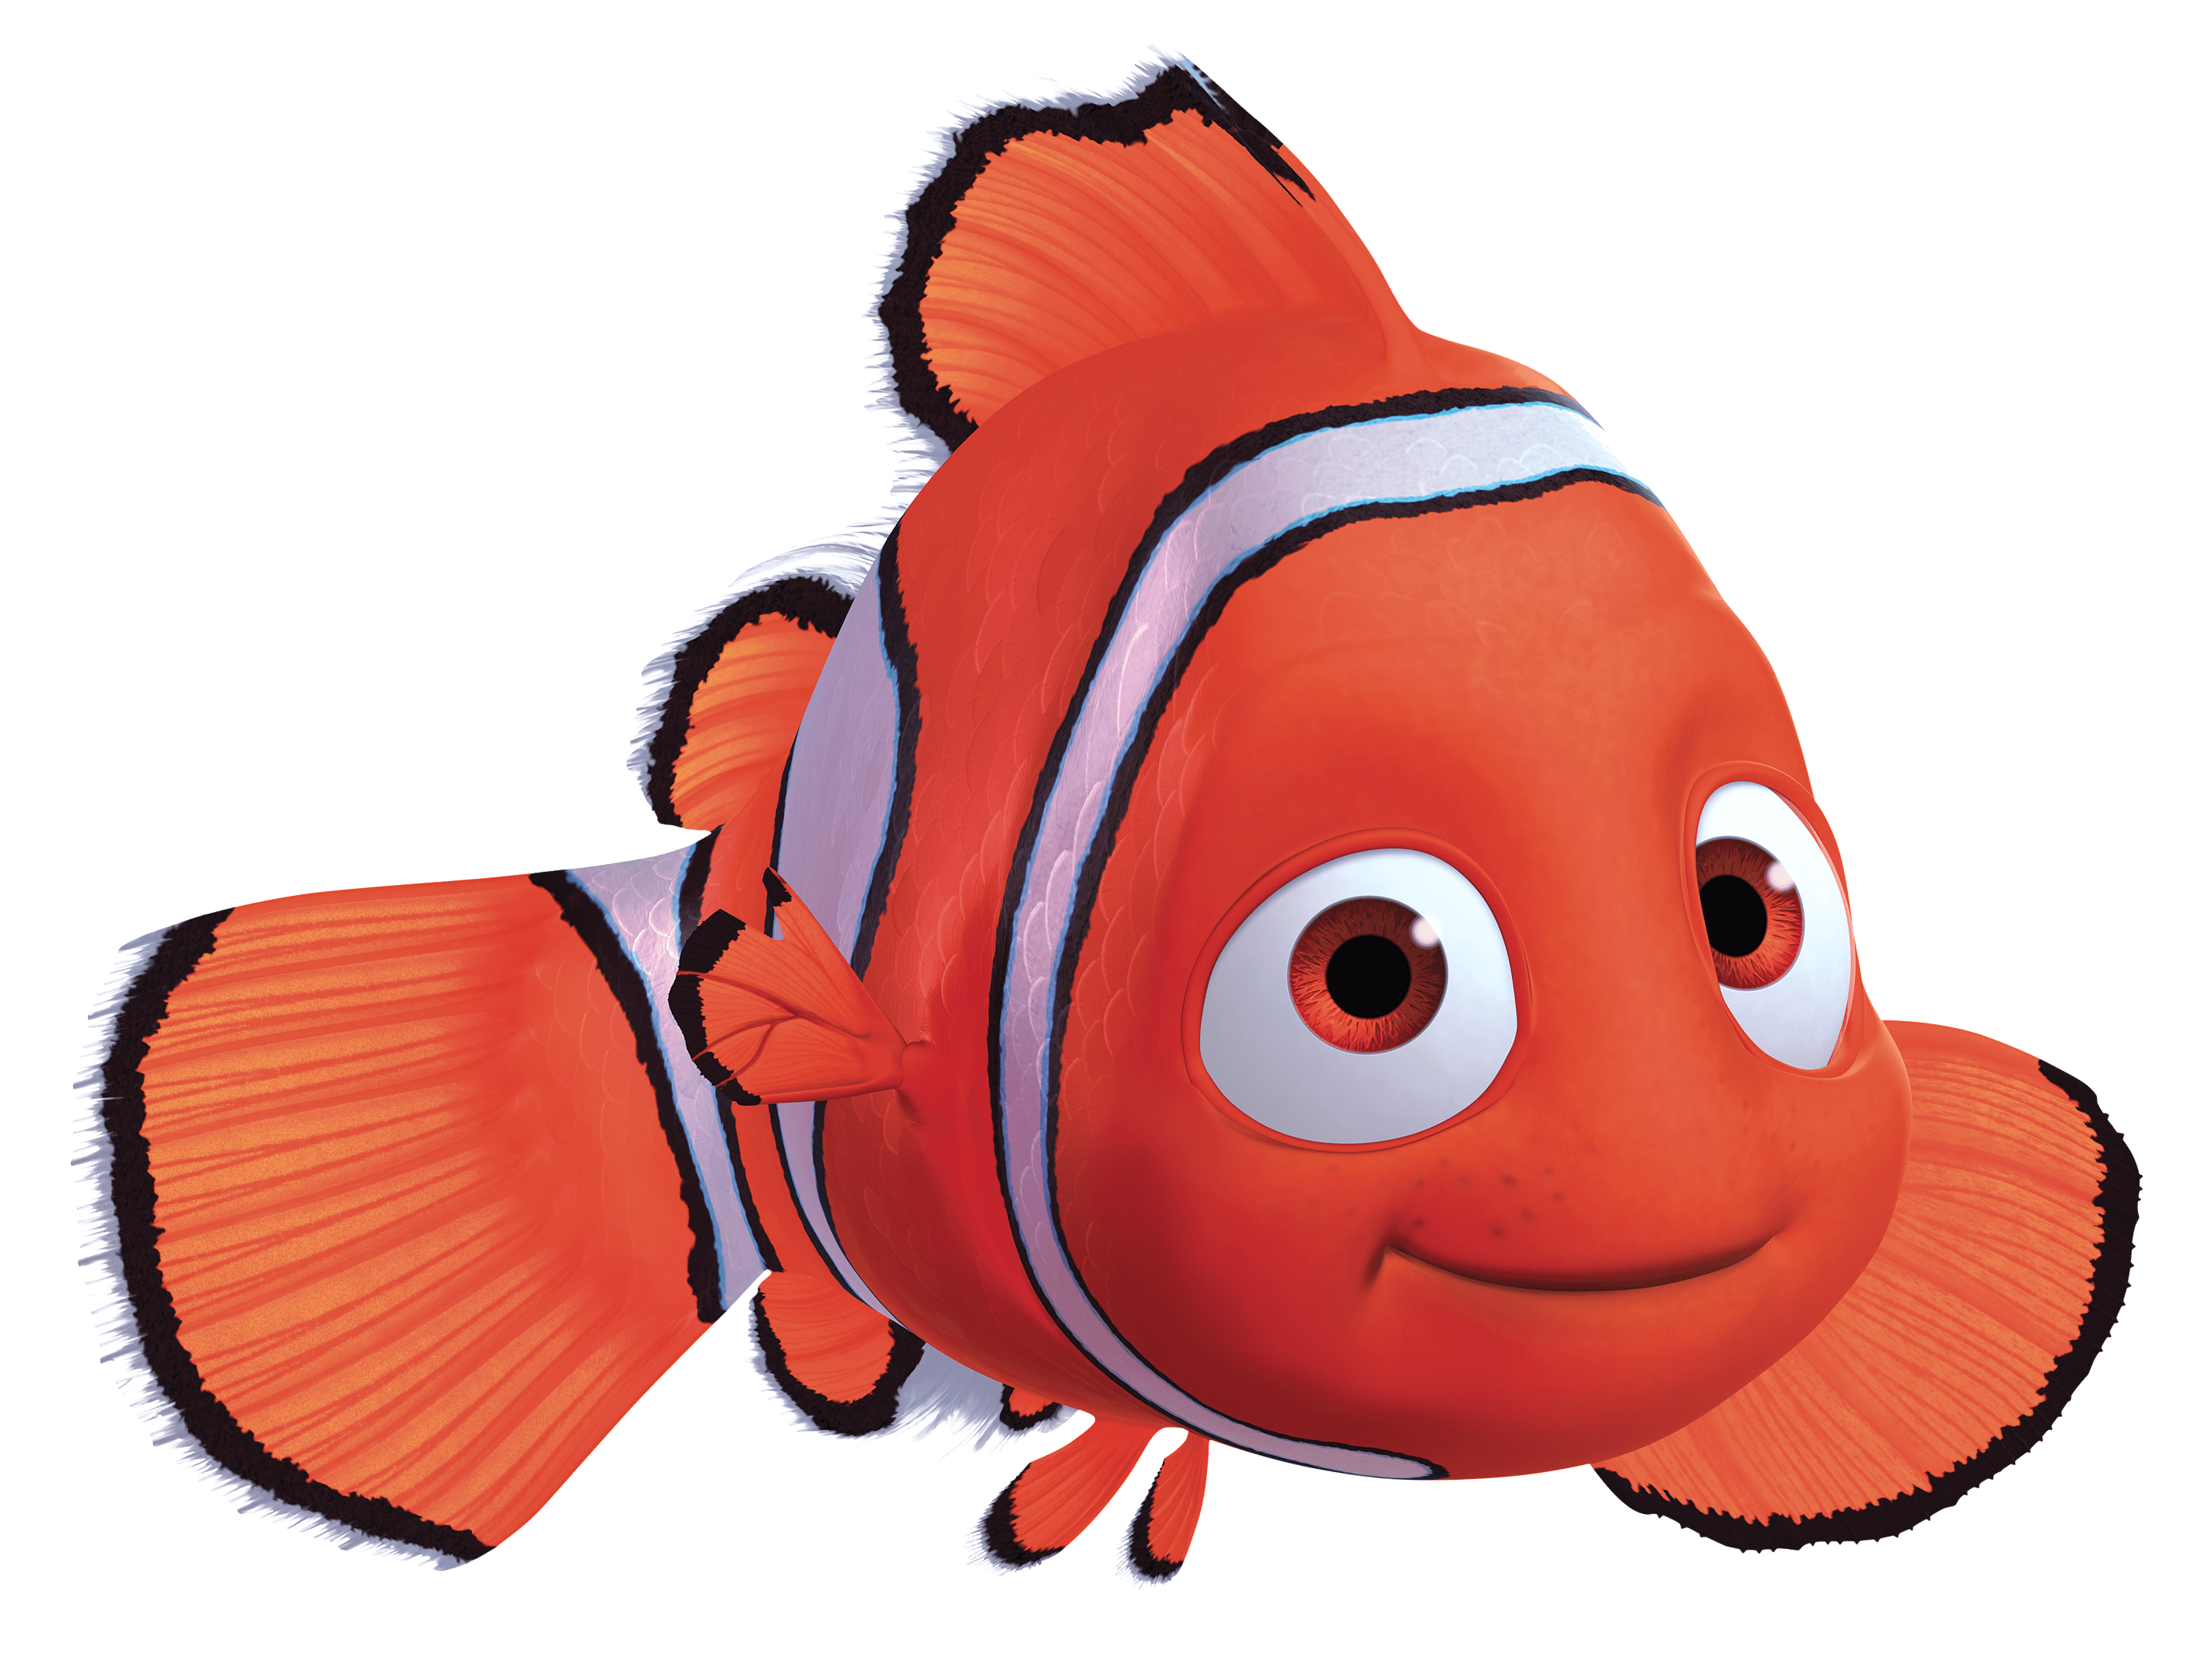 nemo clipart at getdrawings com free for personal use nemo clipart rh getdrawings com clipart nemo disney finding nemo clipart